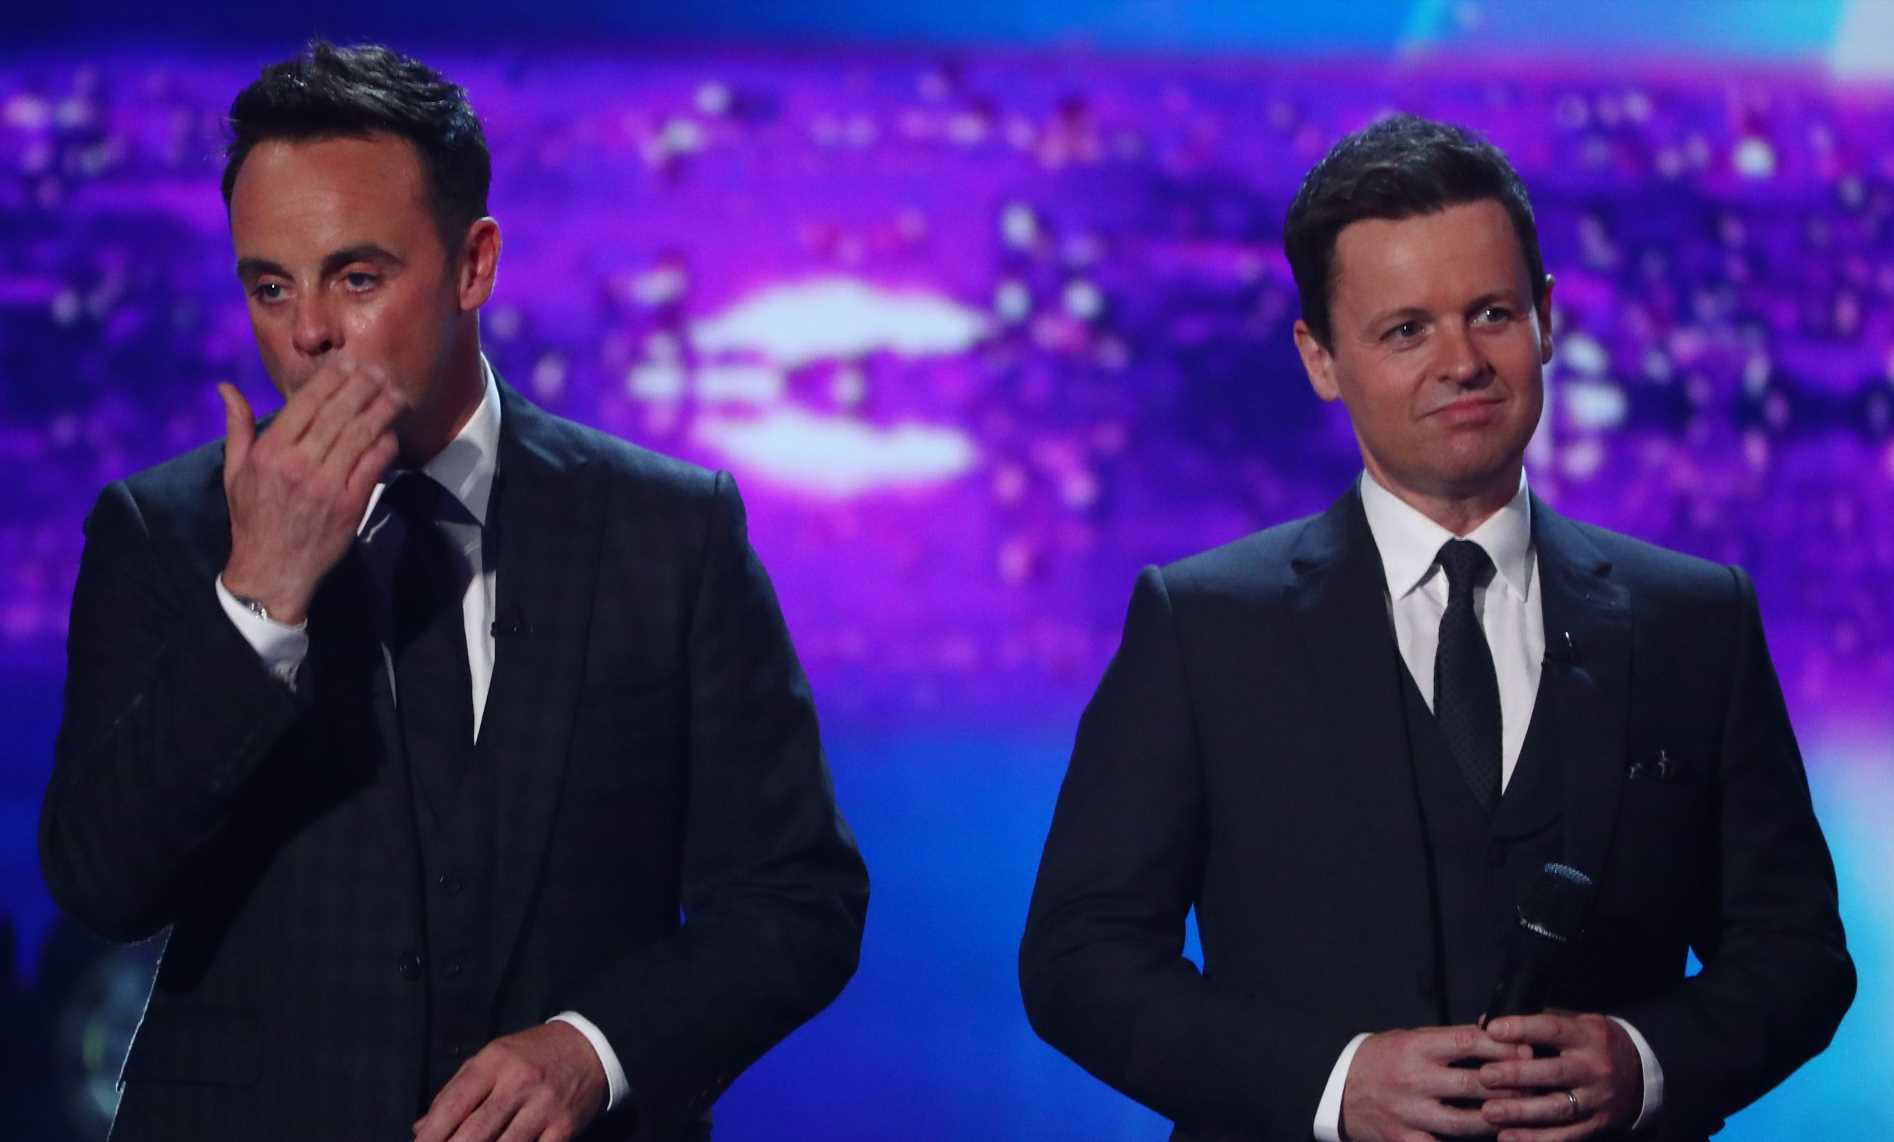 Britain's Got Talent: The Champions – when is it next on TV?